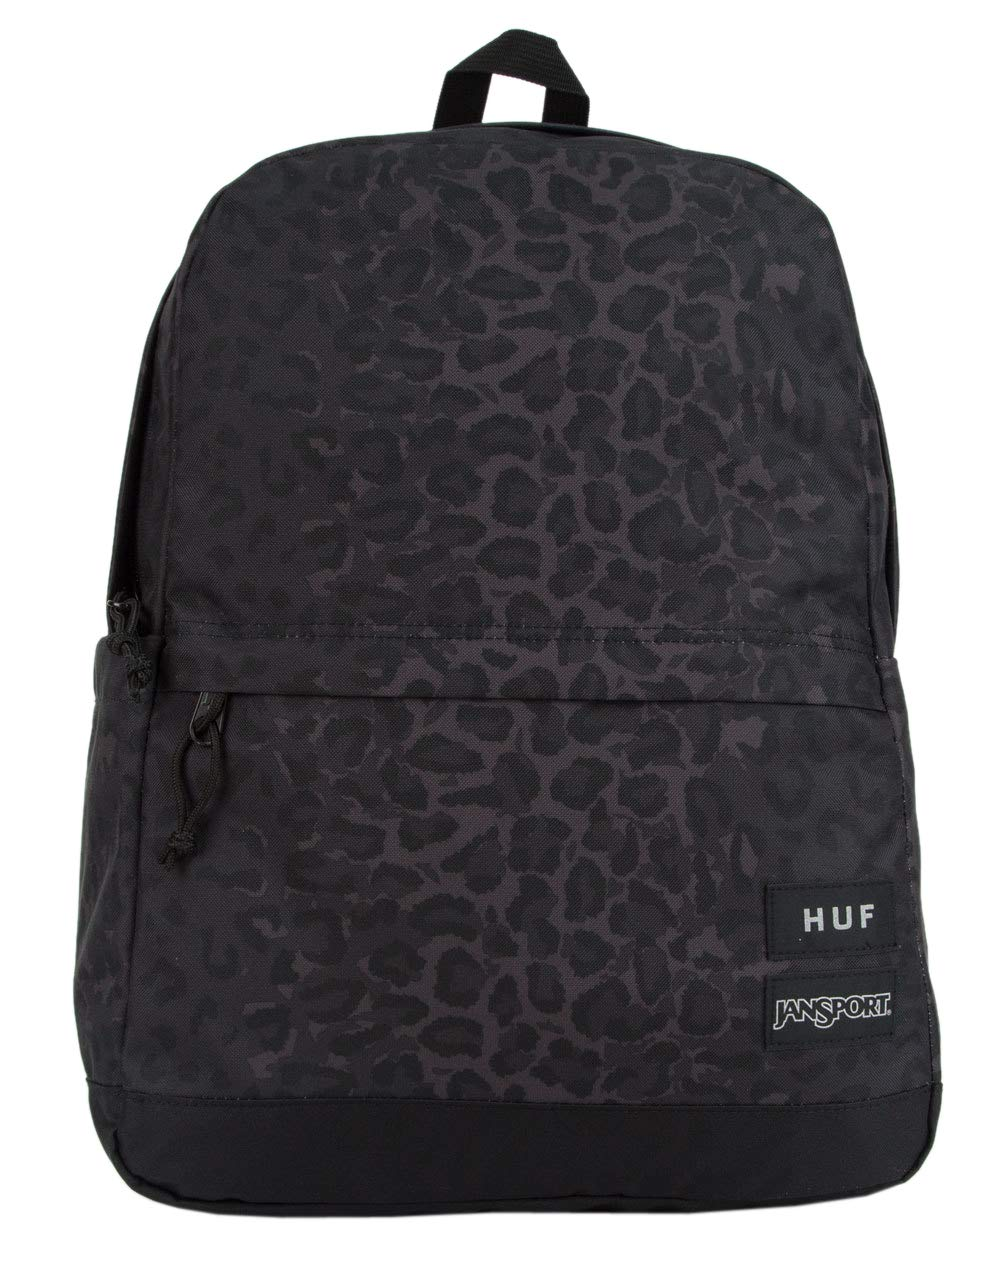 JANSPORT x HUF Wells Backpack, Black by JanSport